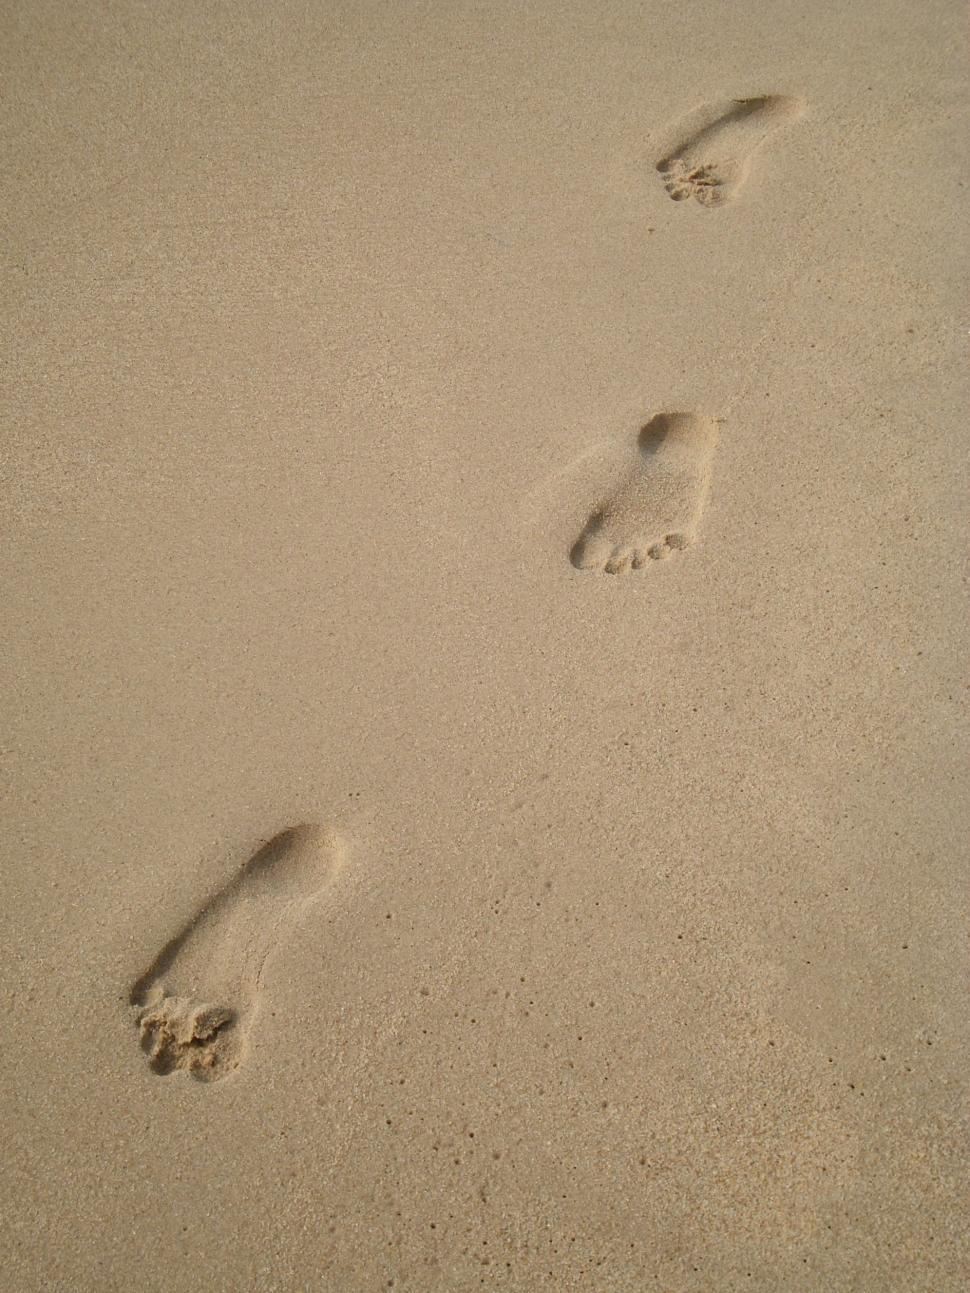 Download Free Stock HD Photo of Footprints in the Sand Online